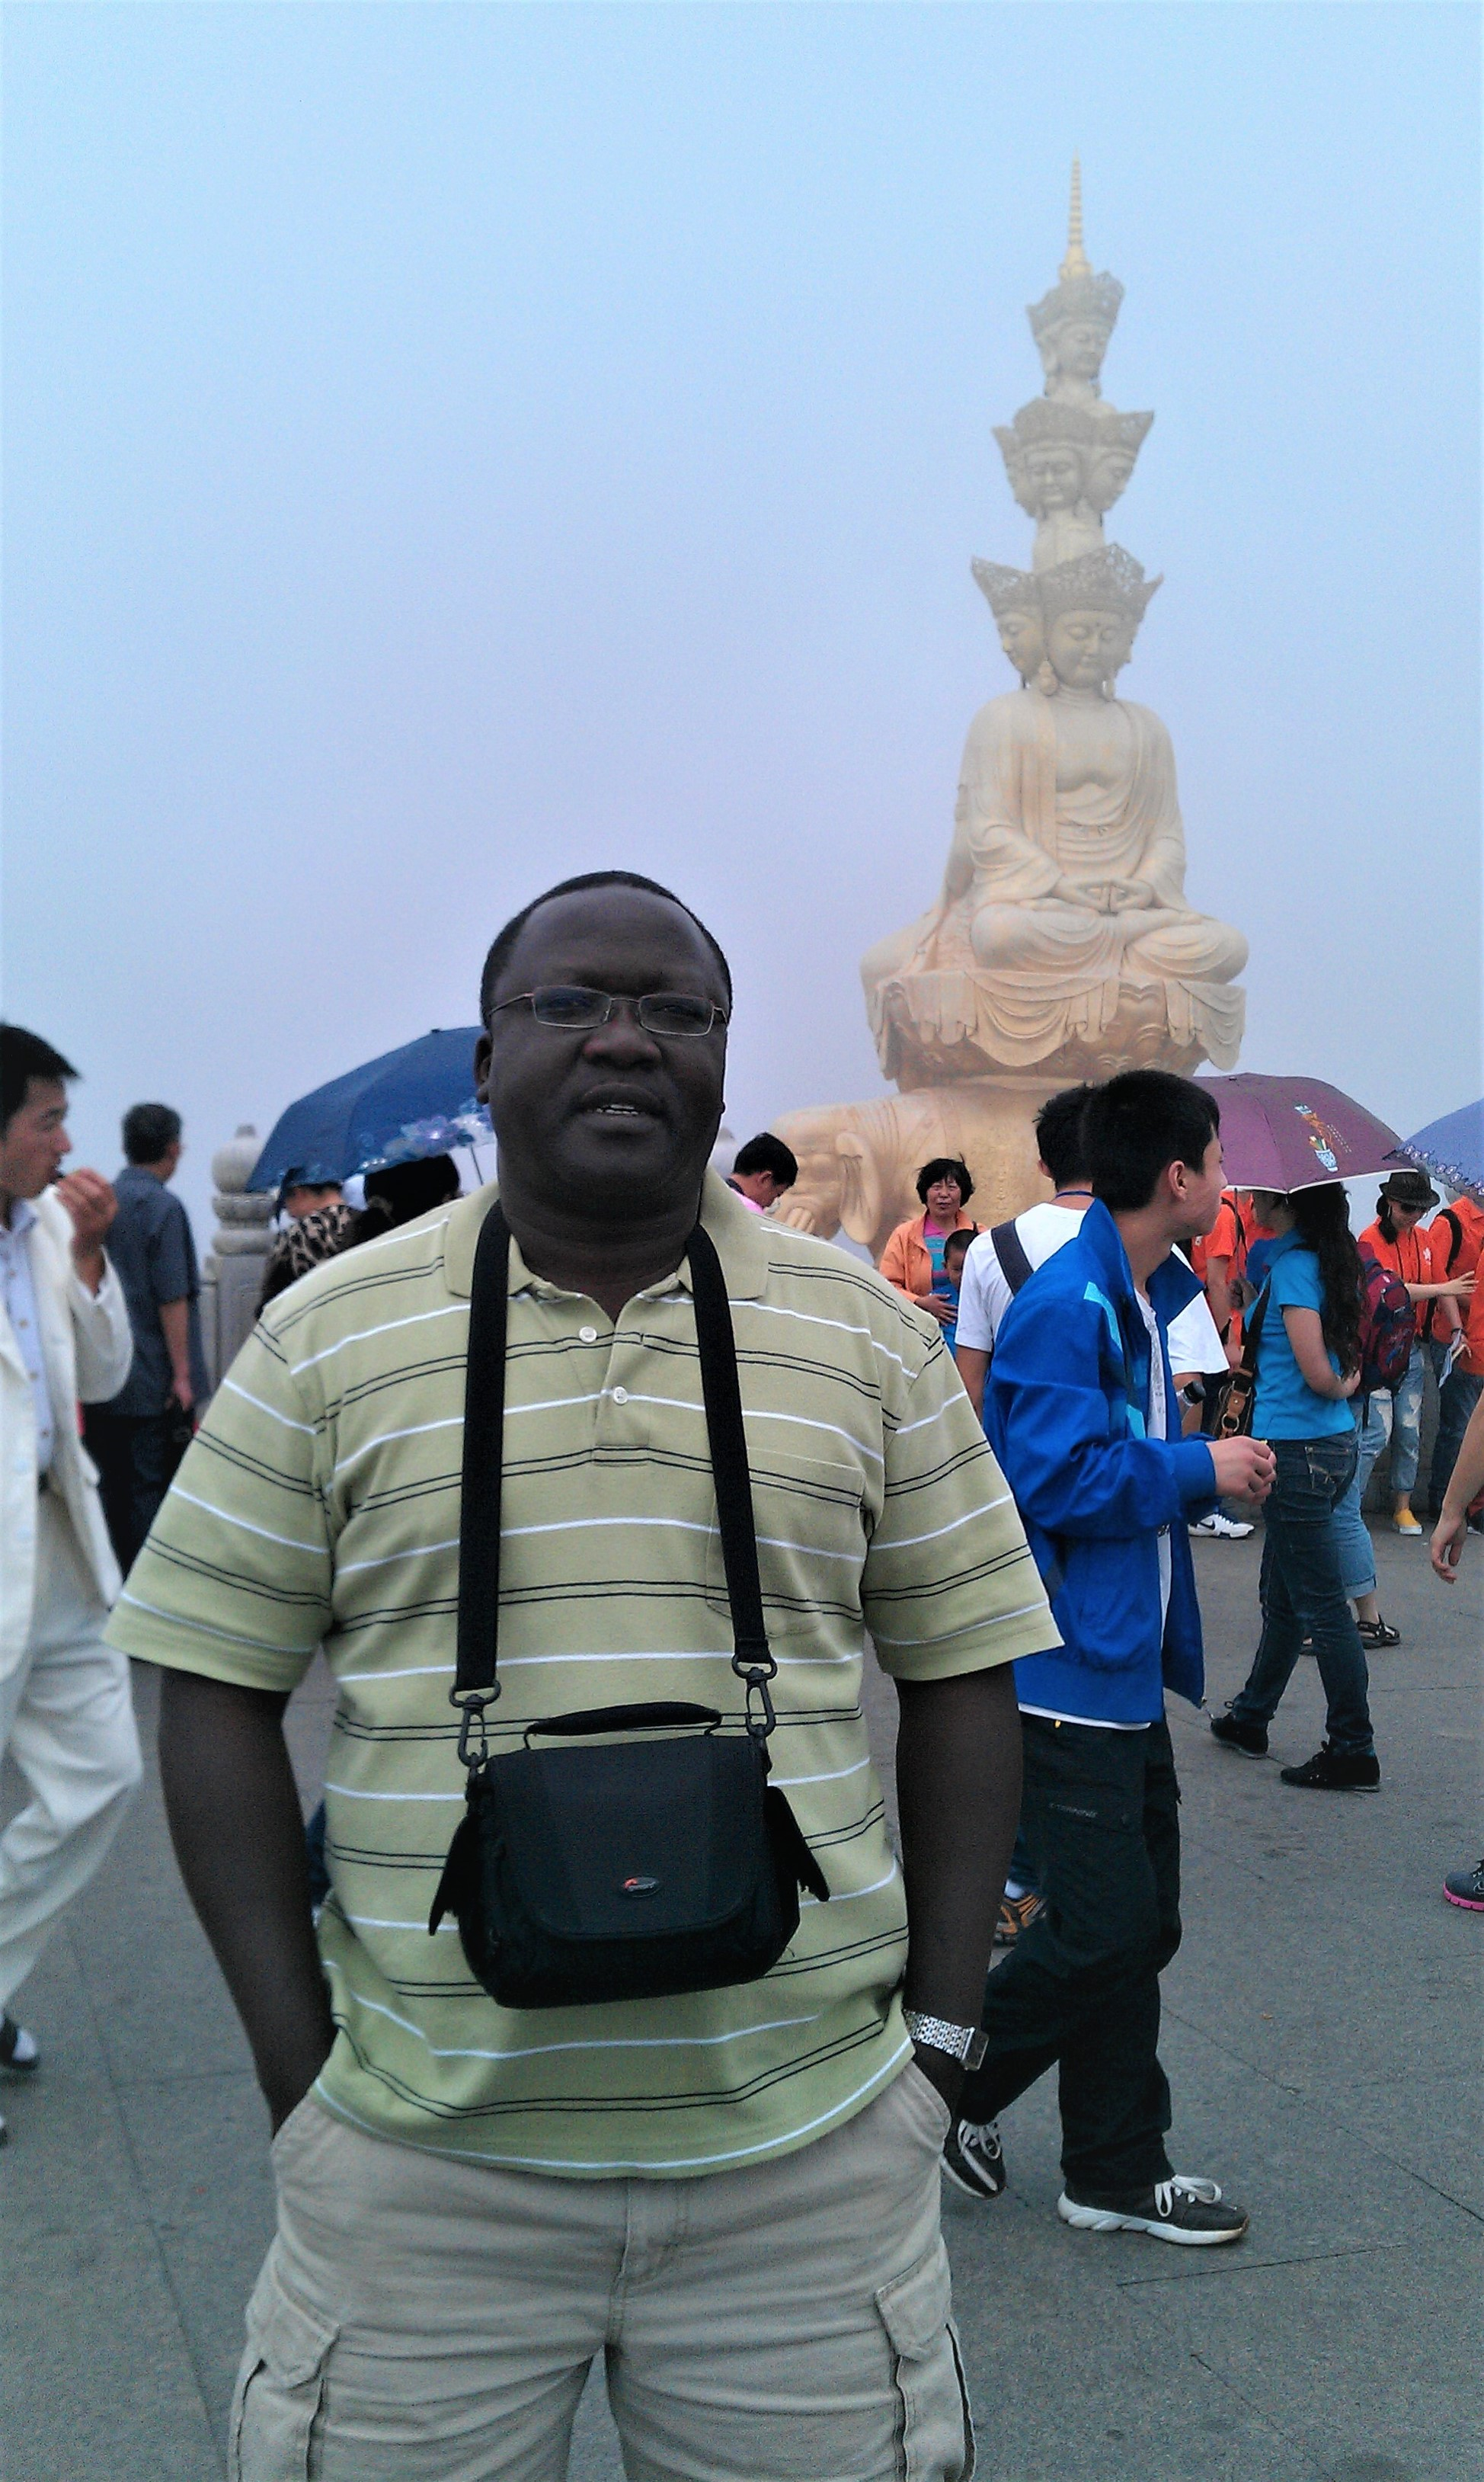 August 2011 in China. This is me at Mt. Emei, Golden Summit, a Buddhist attraction, in Sichuan Province.